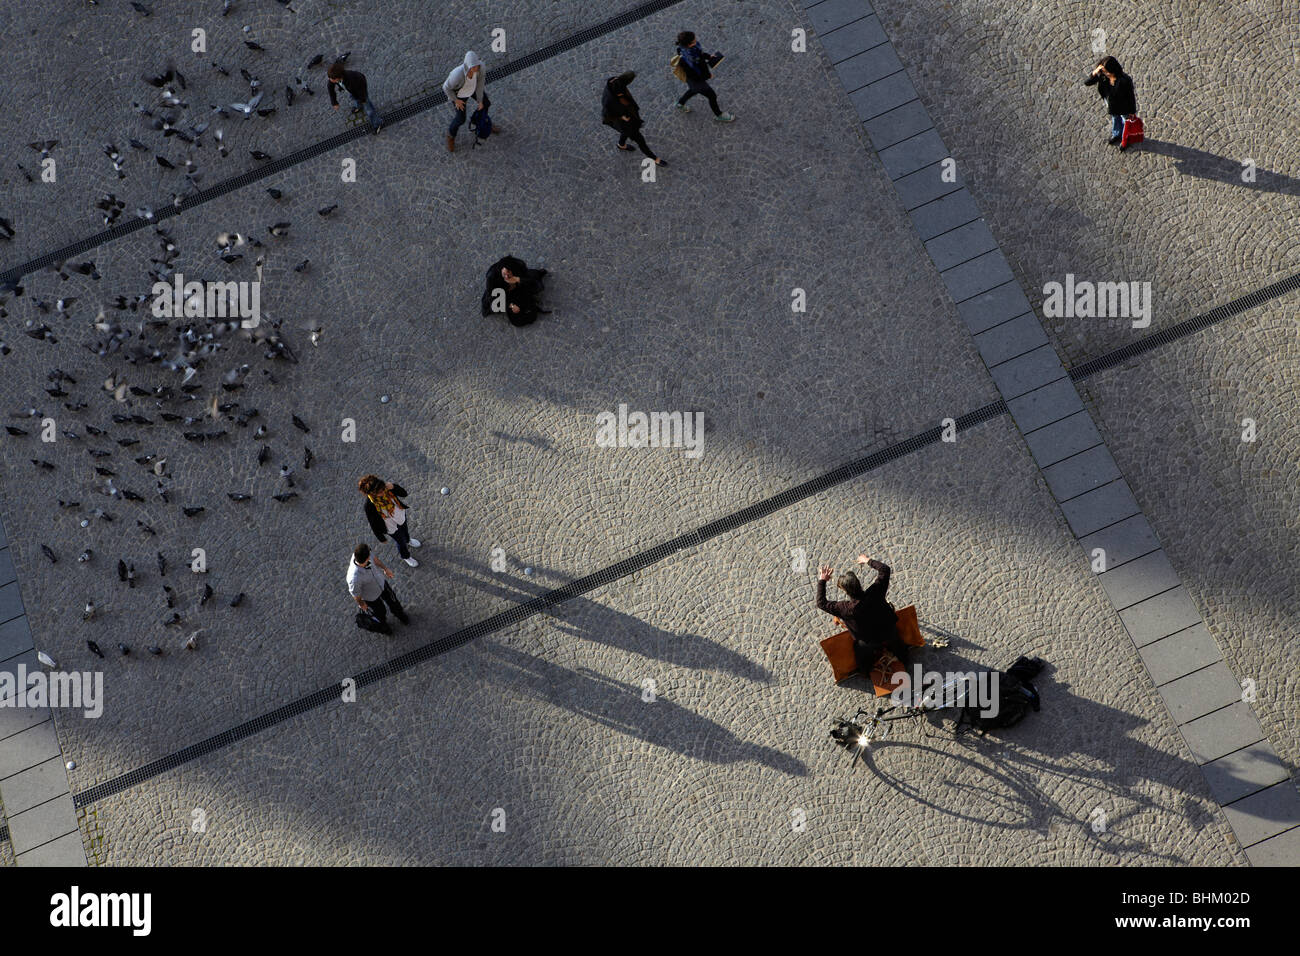 Puppeteer with marionette, people and pigeons from above, Paris, France - Stock Image